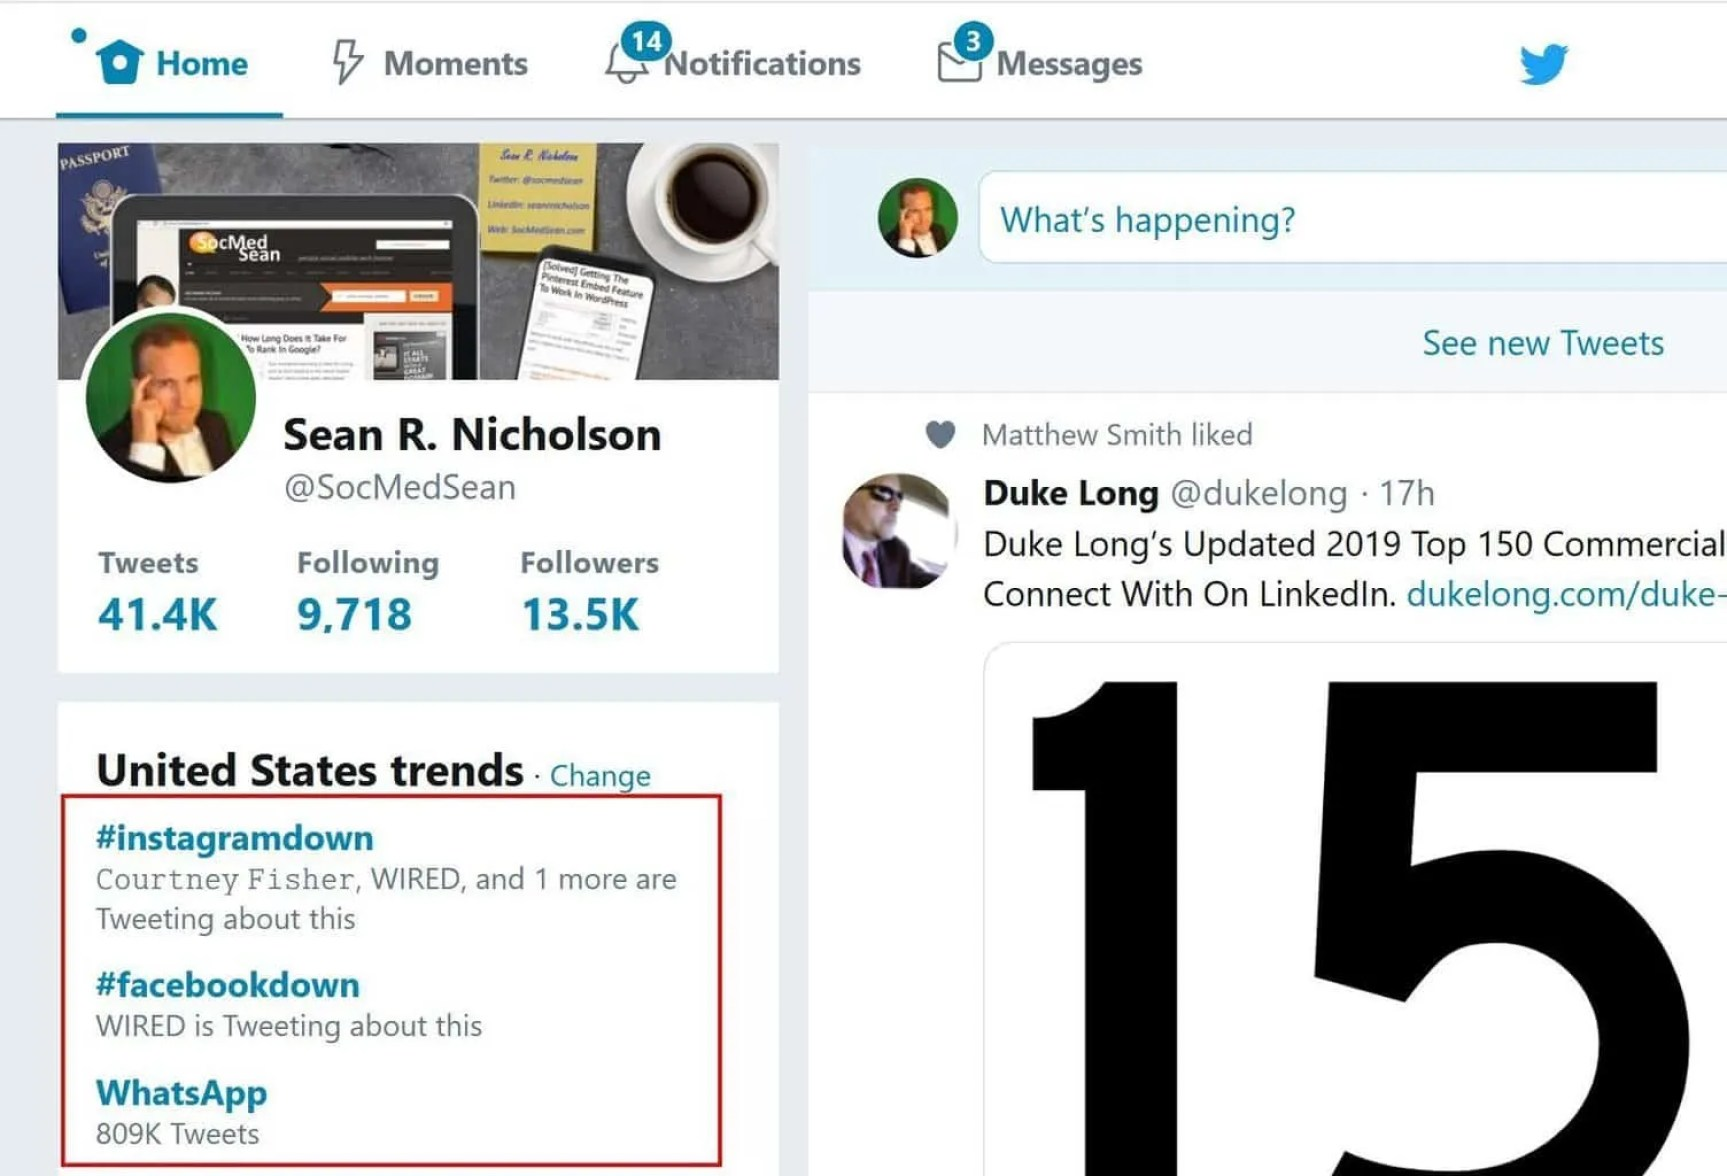 Twitter hashtags can tell you when Facebook, Instagram, or WhatsApp are down